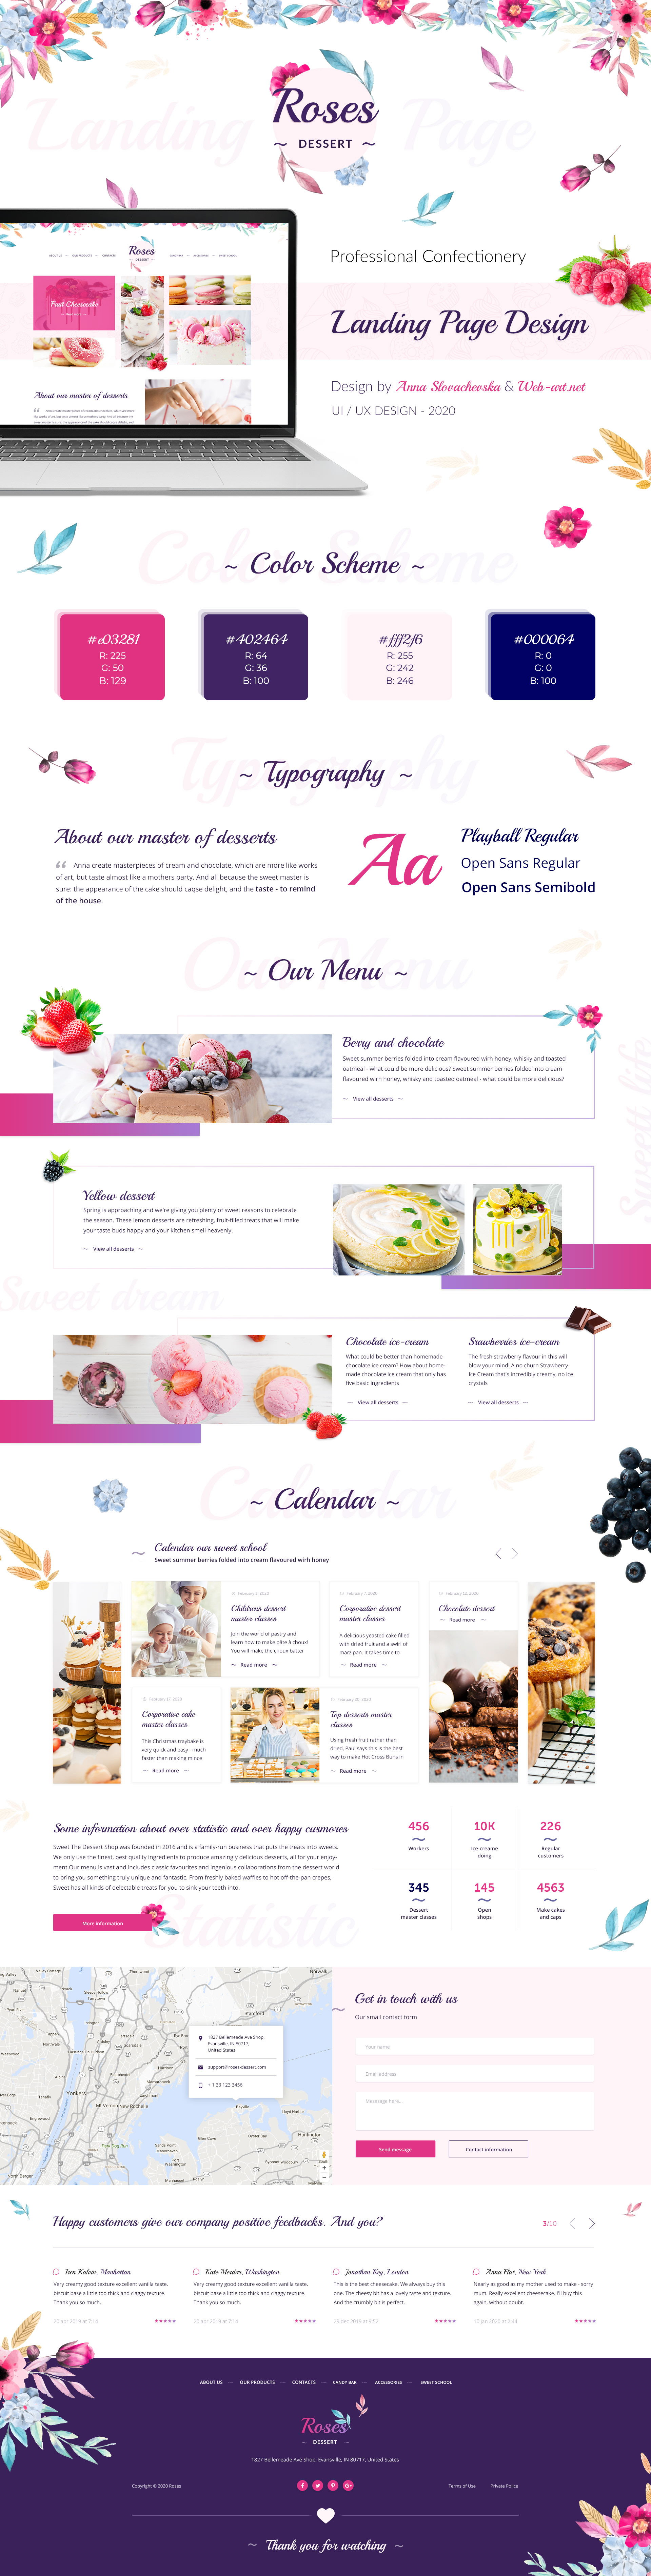 Landing page for a confectionery